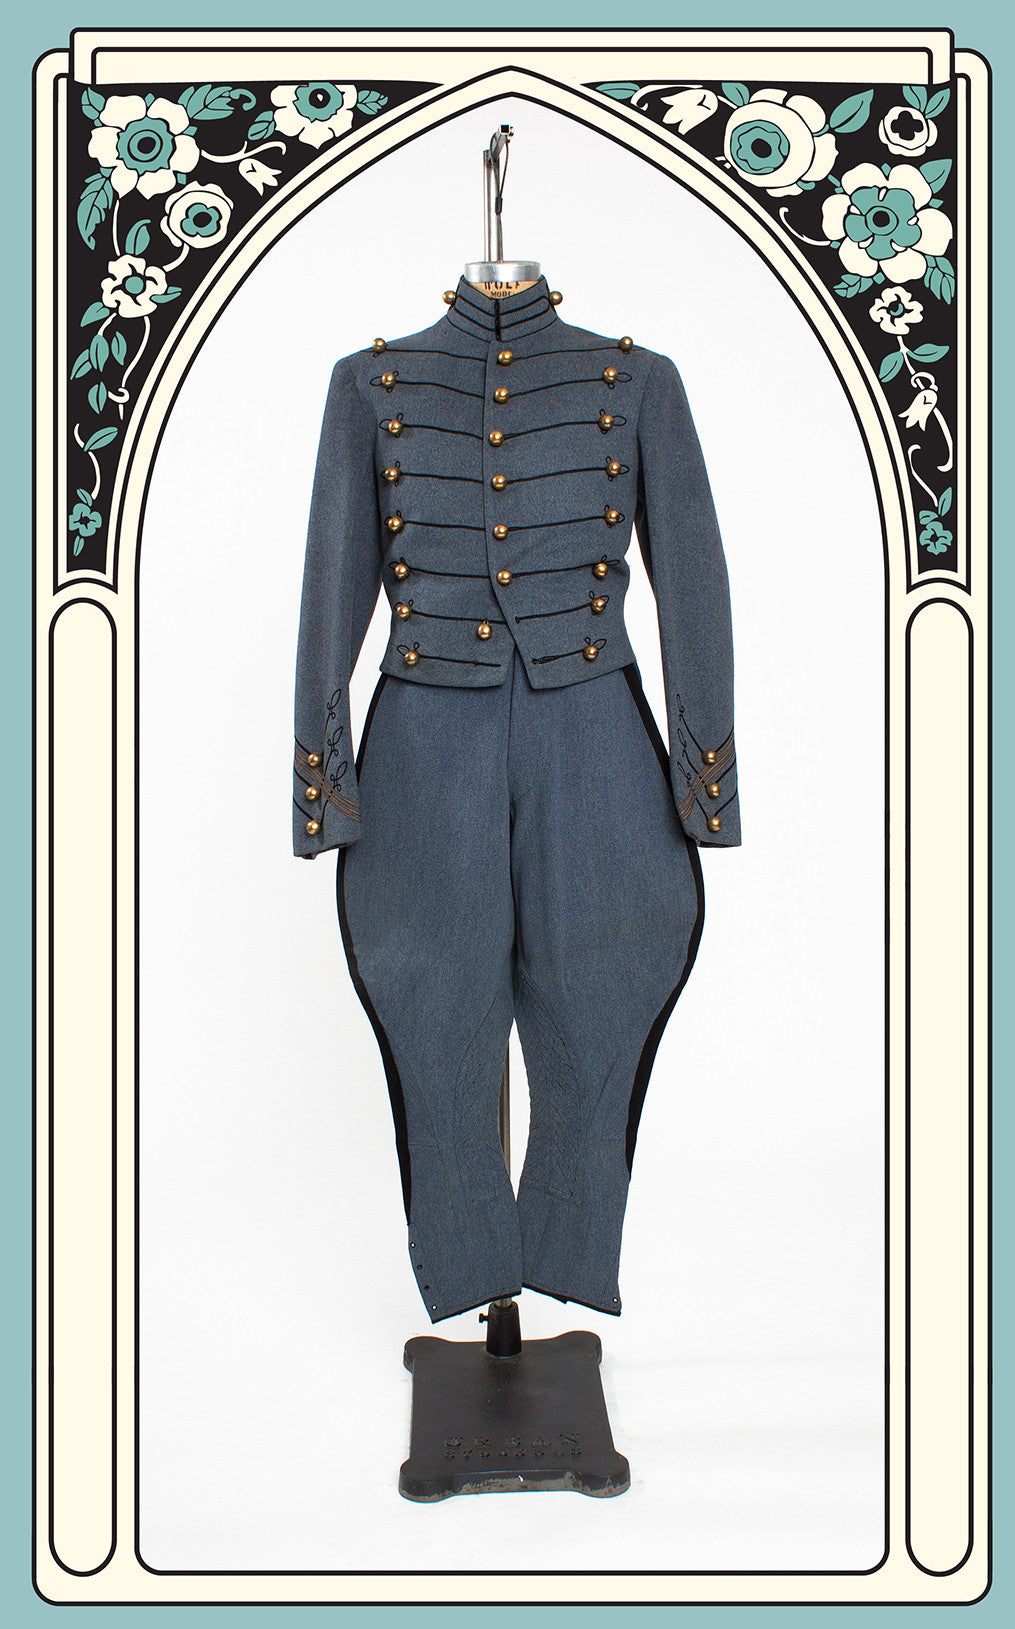 Rare Dated 1935-38 West Point Military Academy Cadet Full Dress Gray Winter Uniform with Formal Pants & Jodhpurs